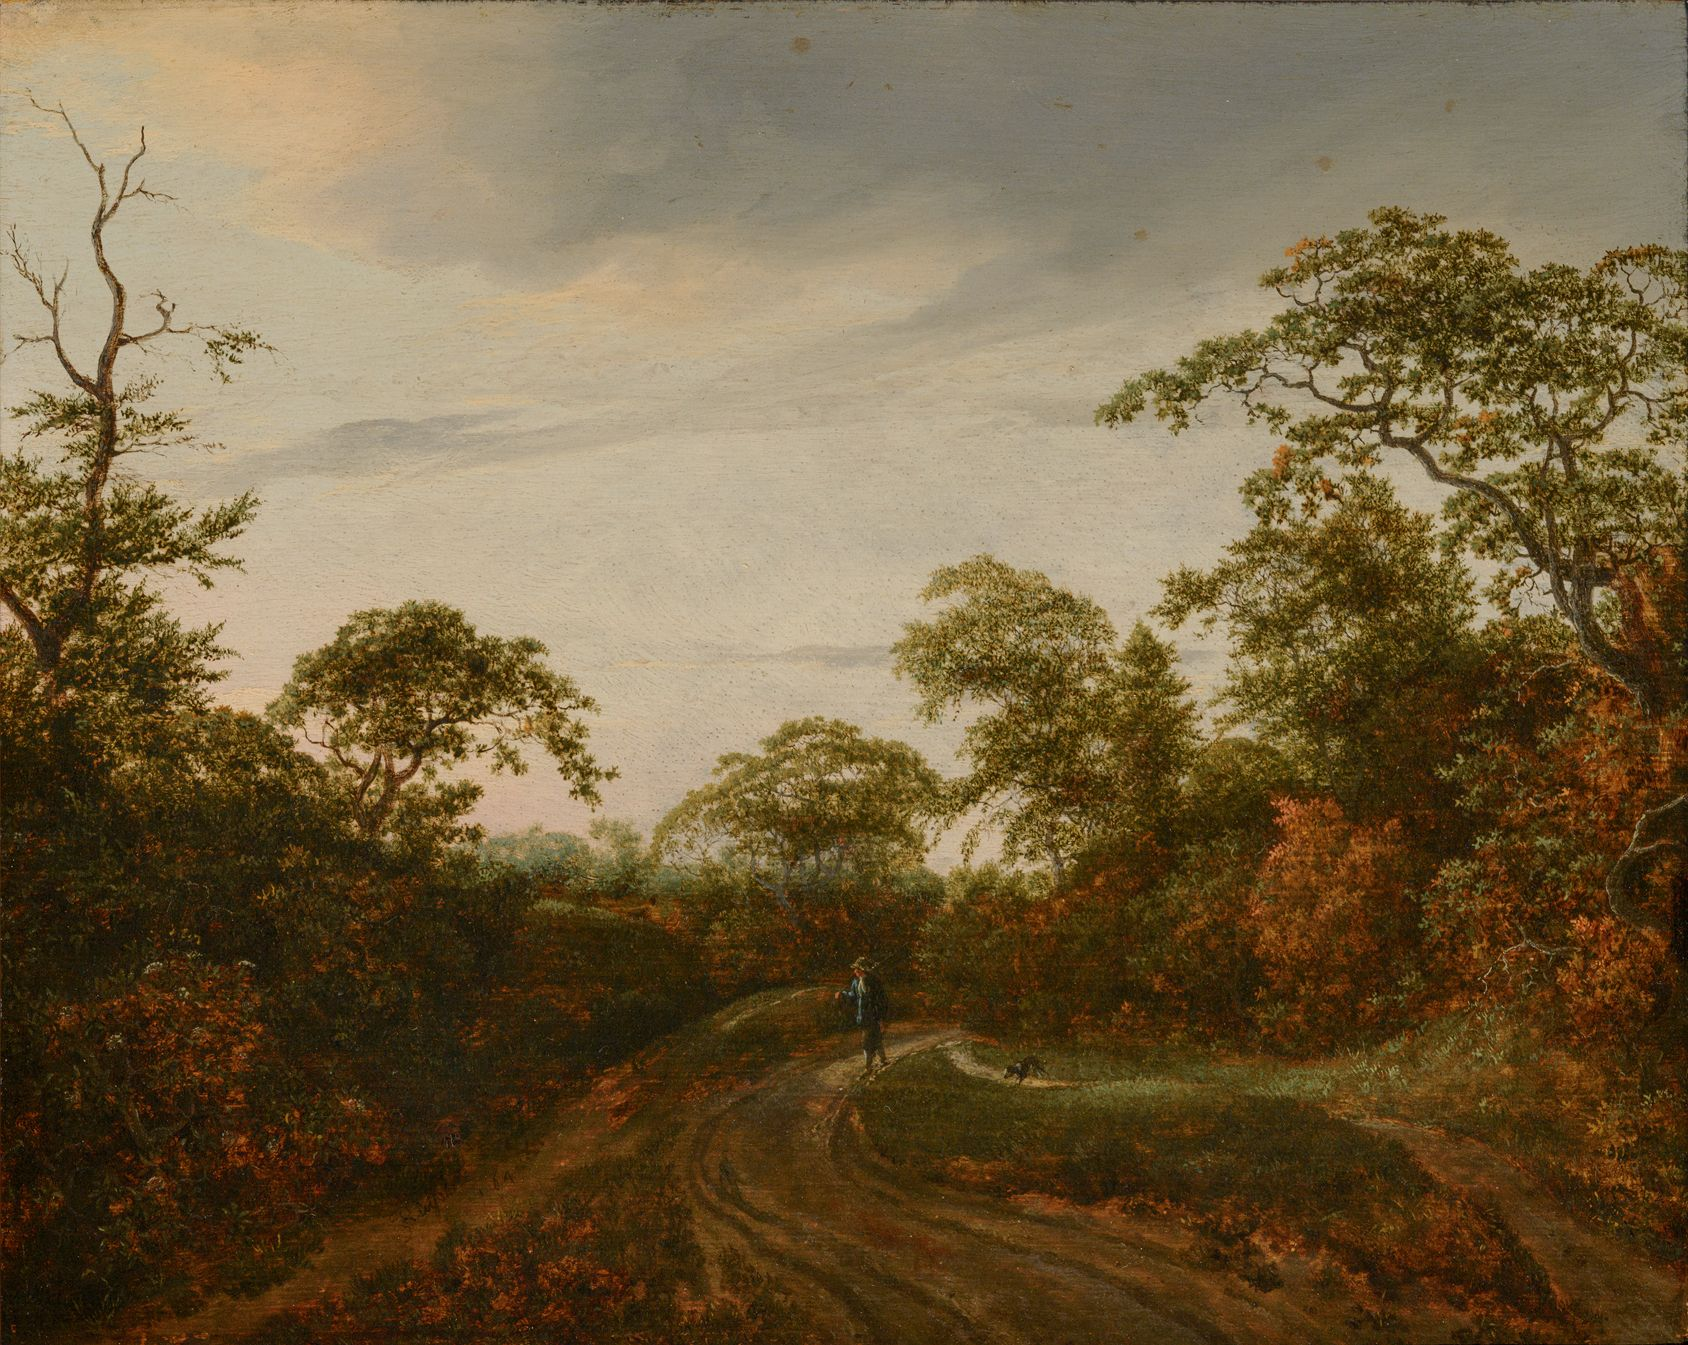 Road through a Wooded Landscape at Twilight | Jacob van Ruisdael | Oil Painting